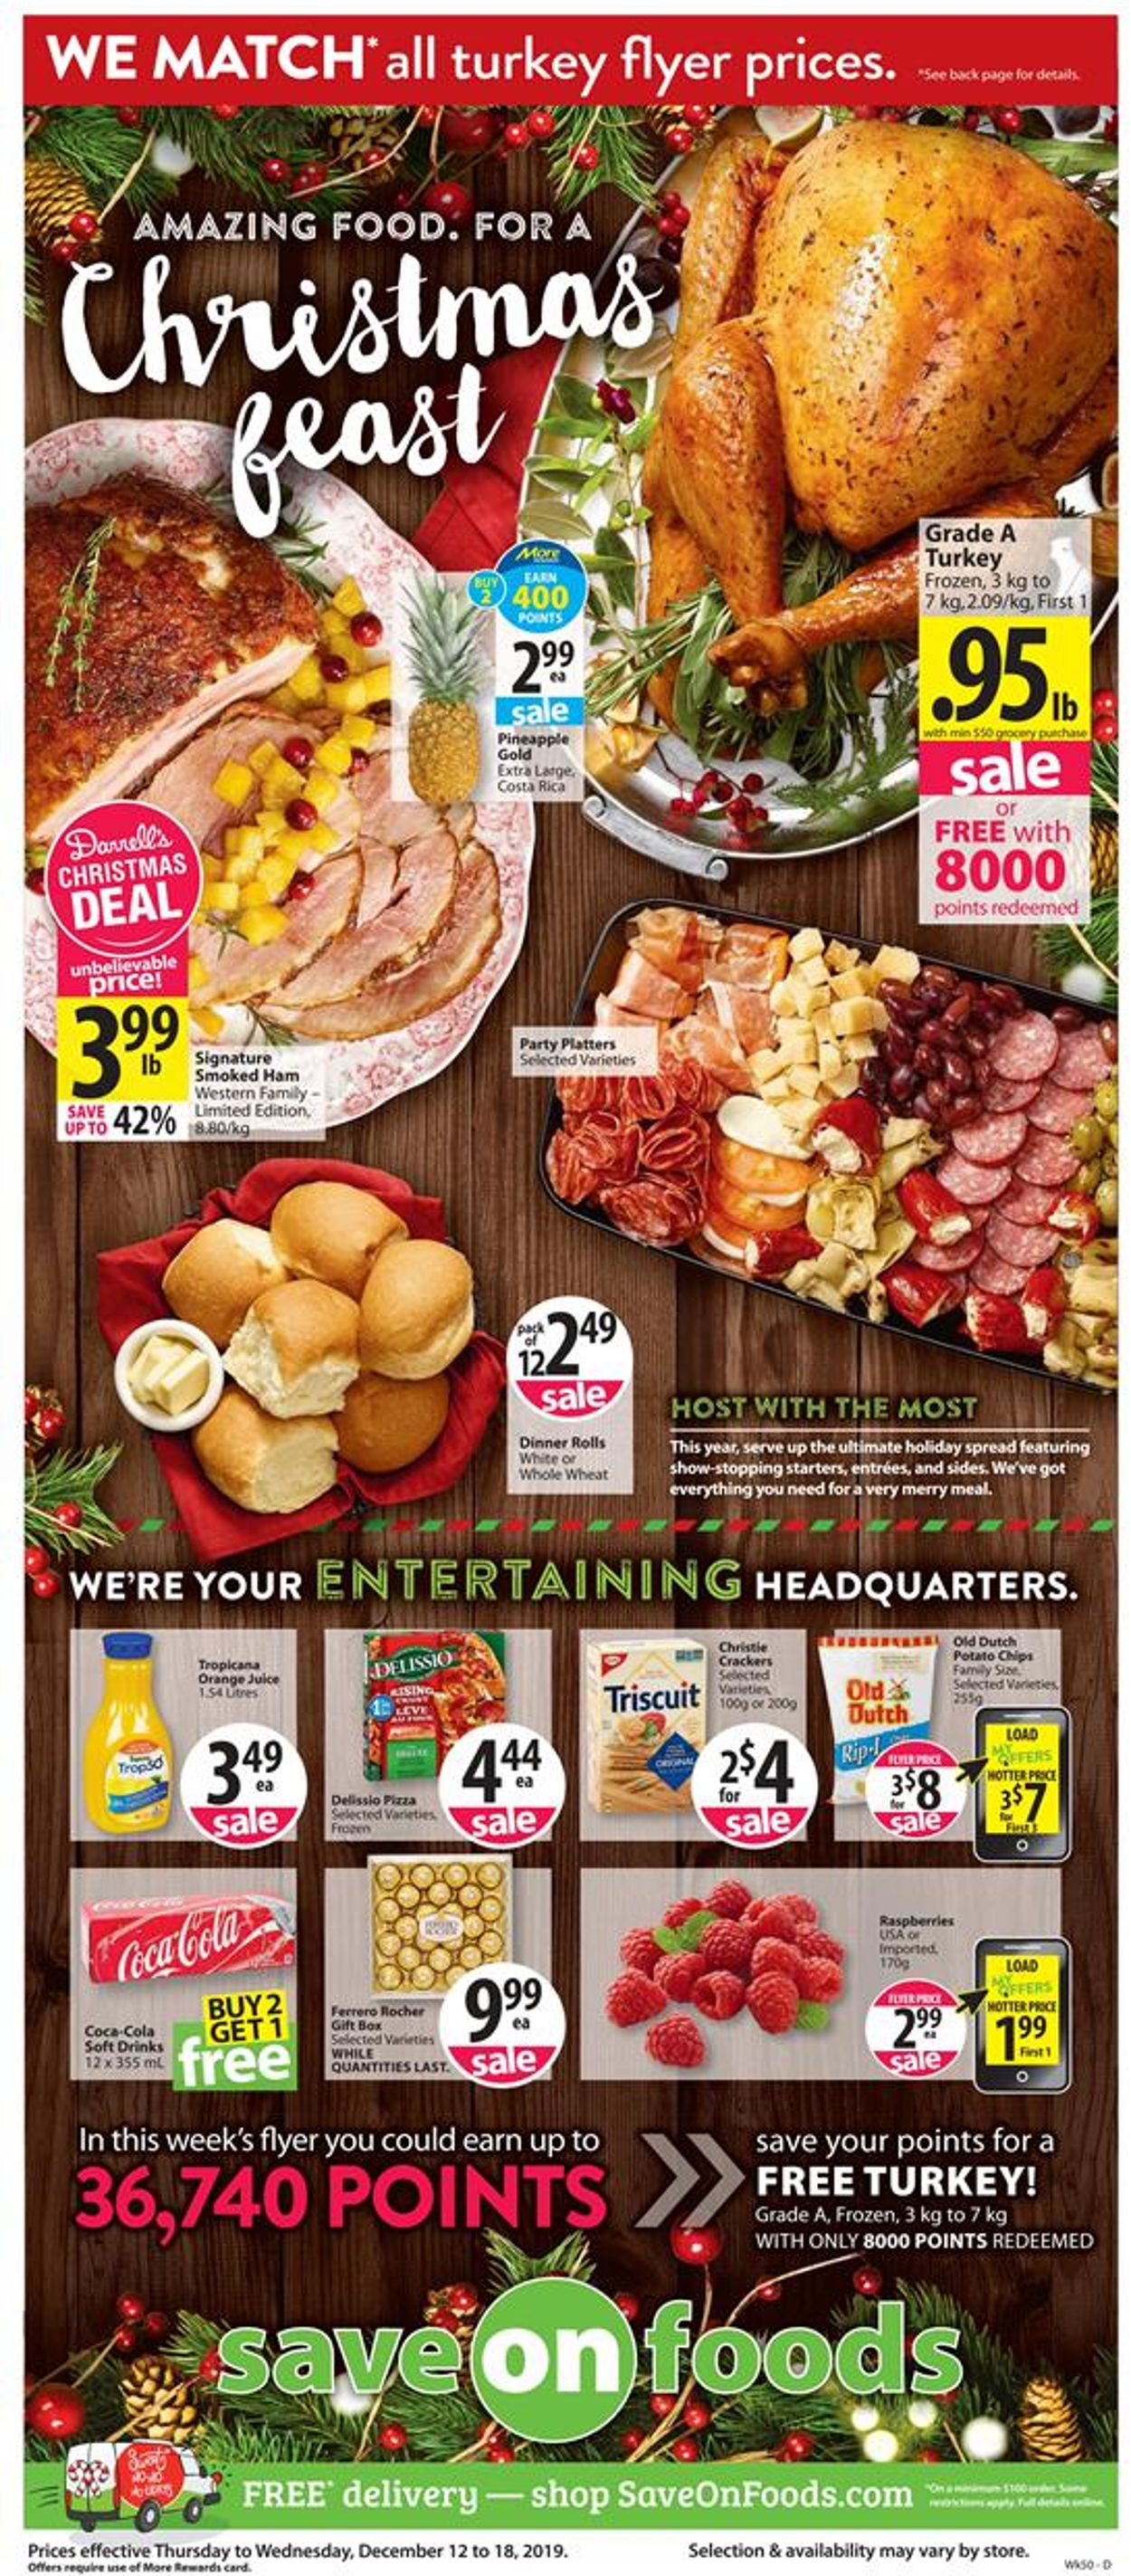 Save-On-Foods - CHRISTMAS 2019 FLYER Flyer - 12/12-12/18/2019